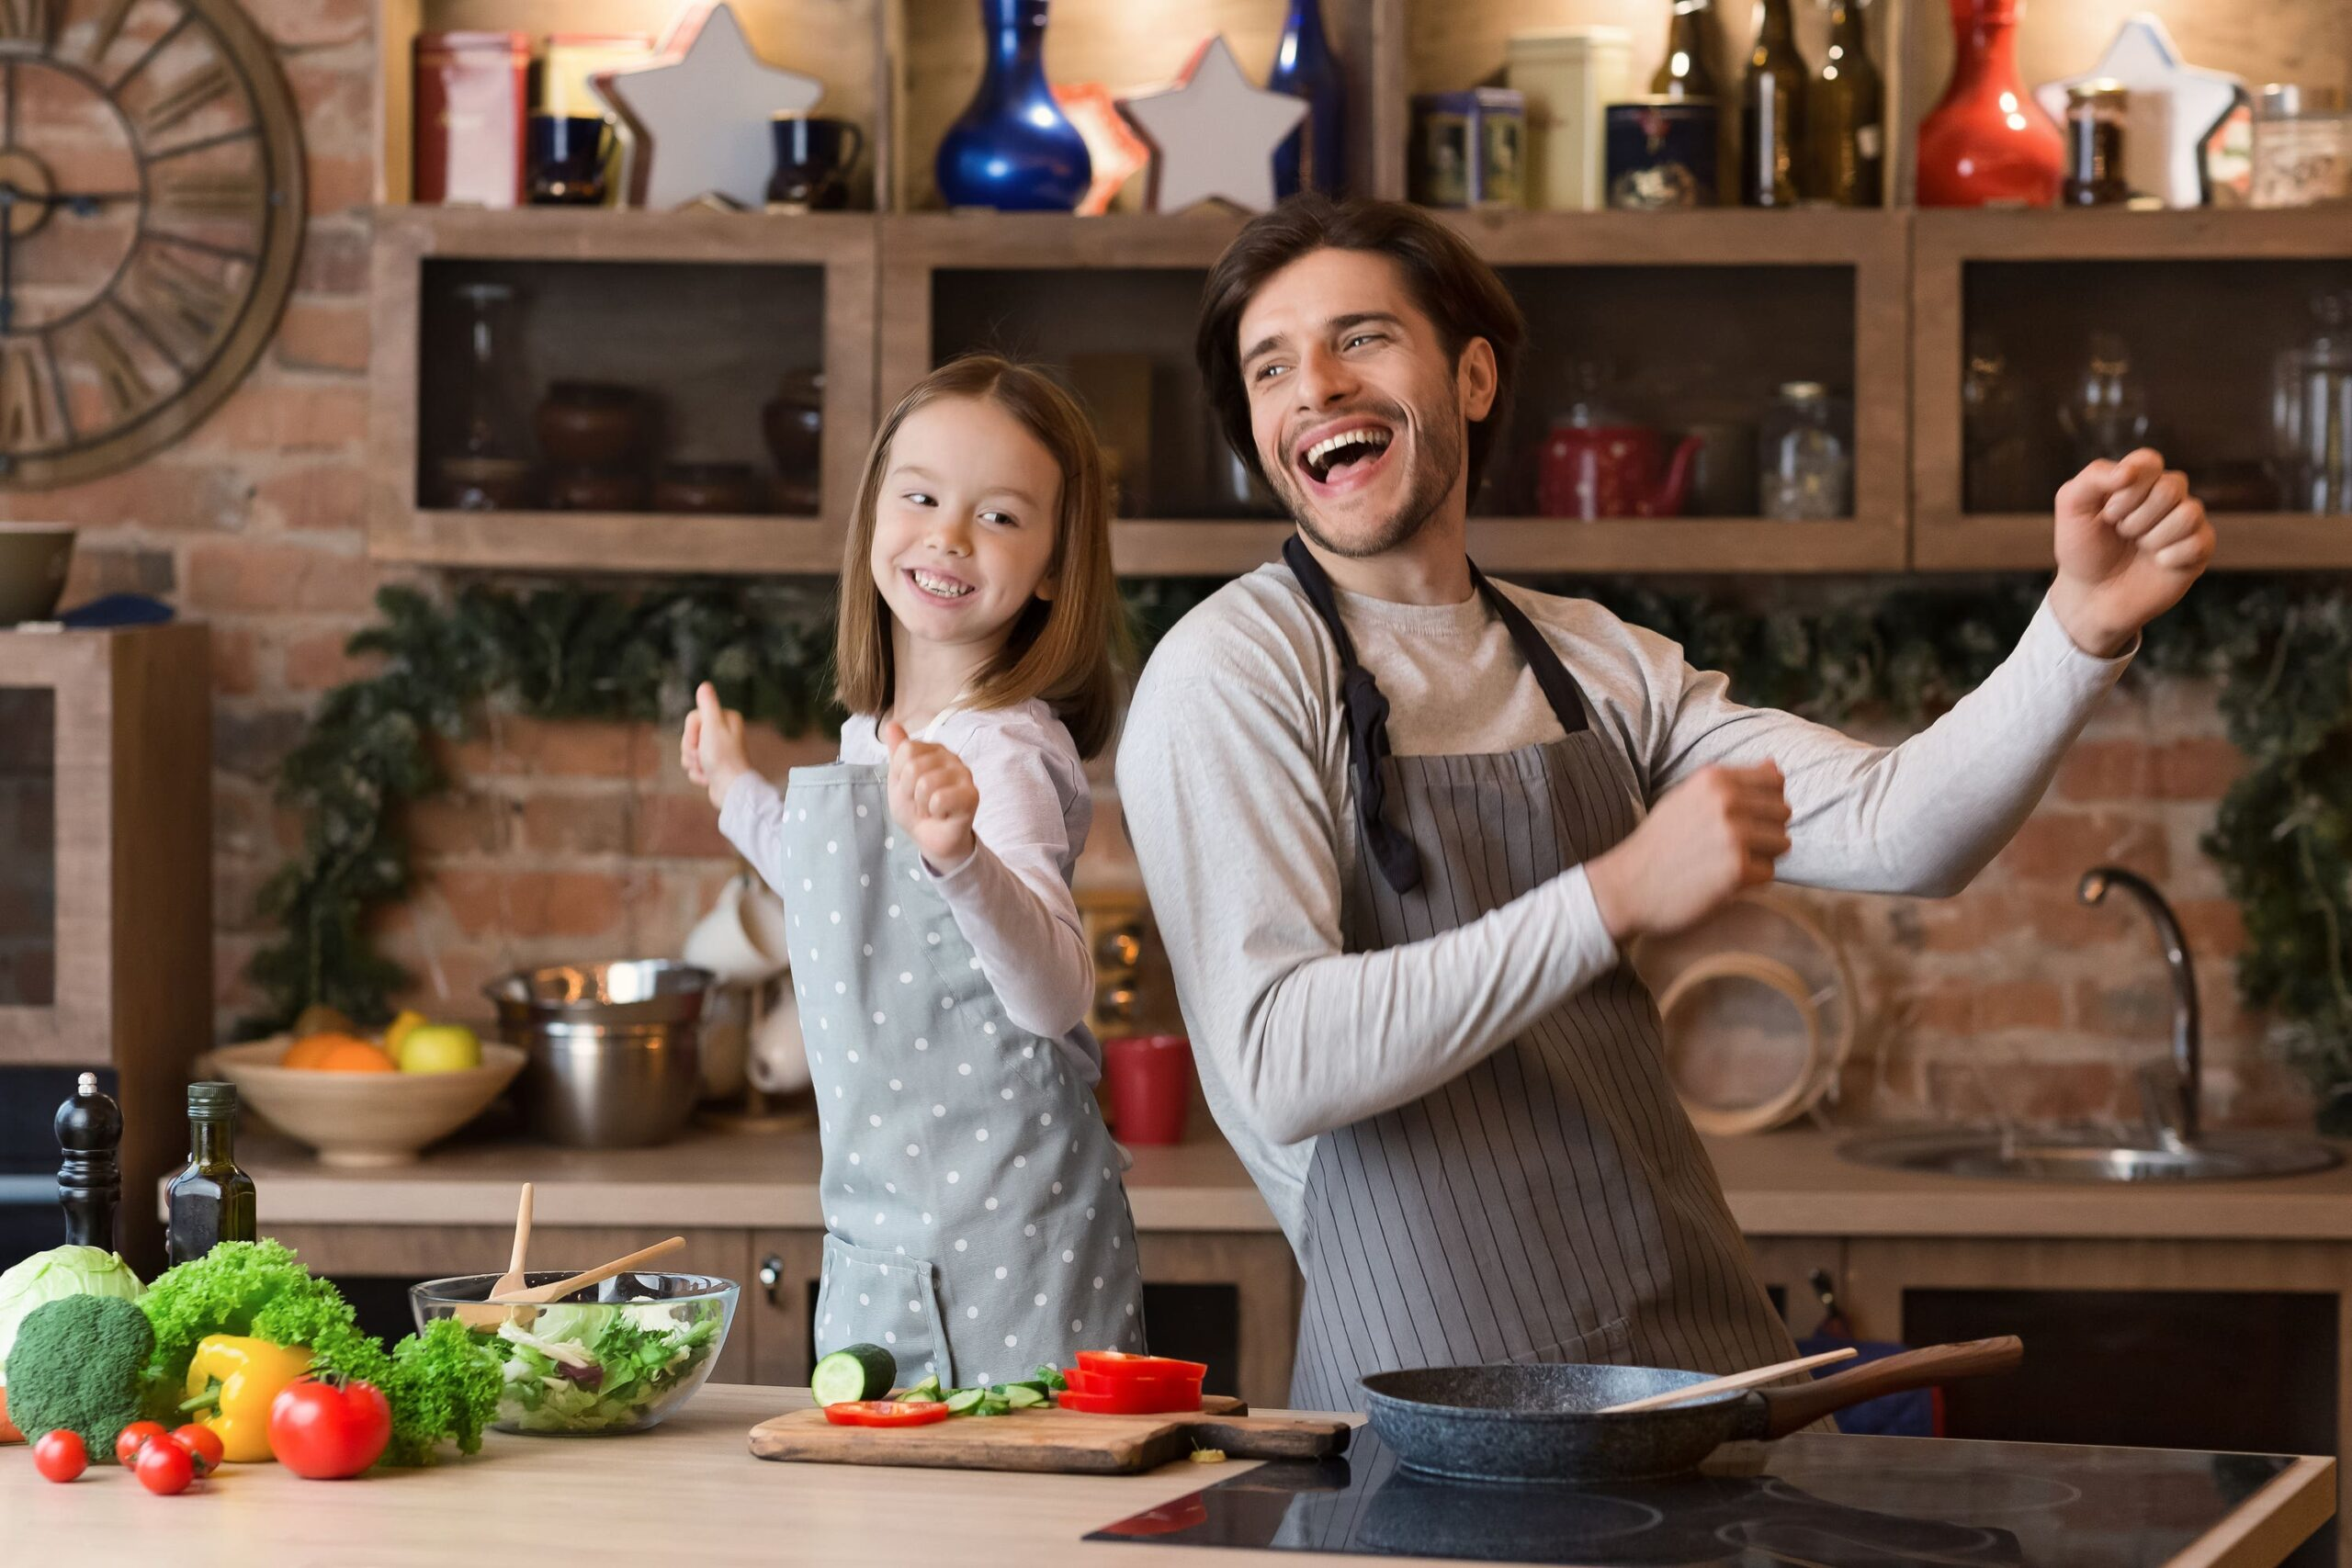 chef and child dance in kitchen scaled